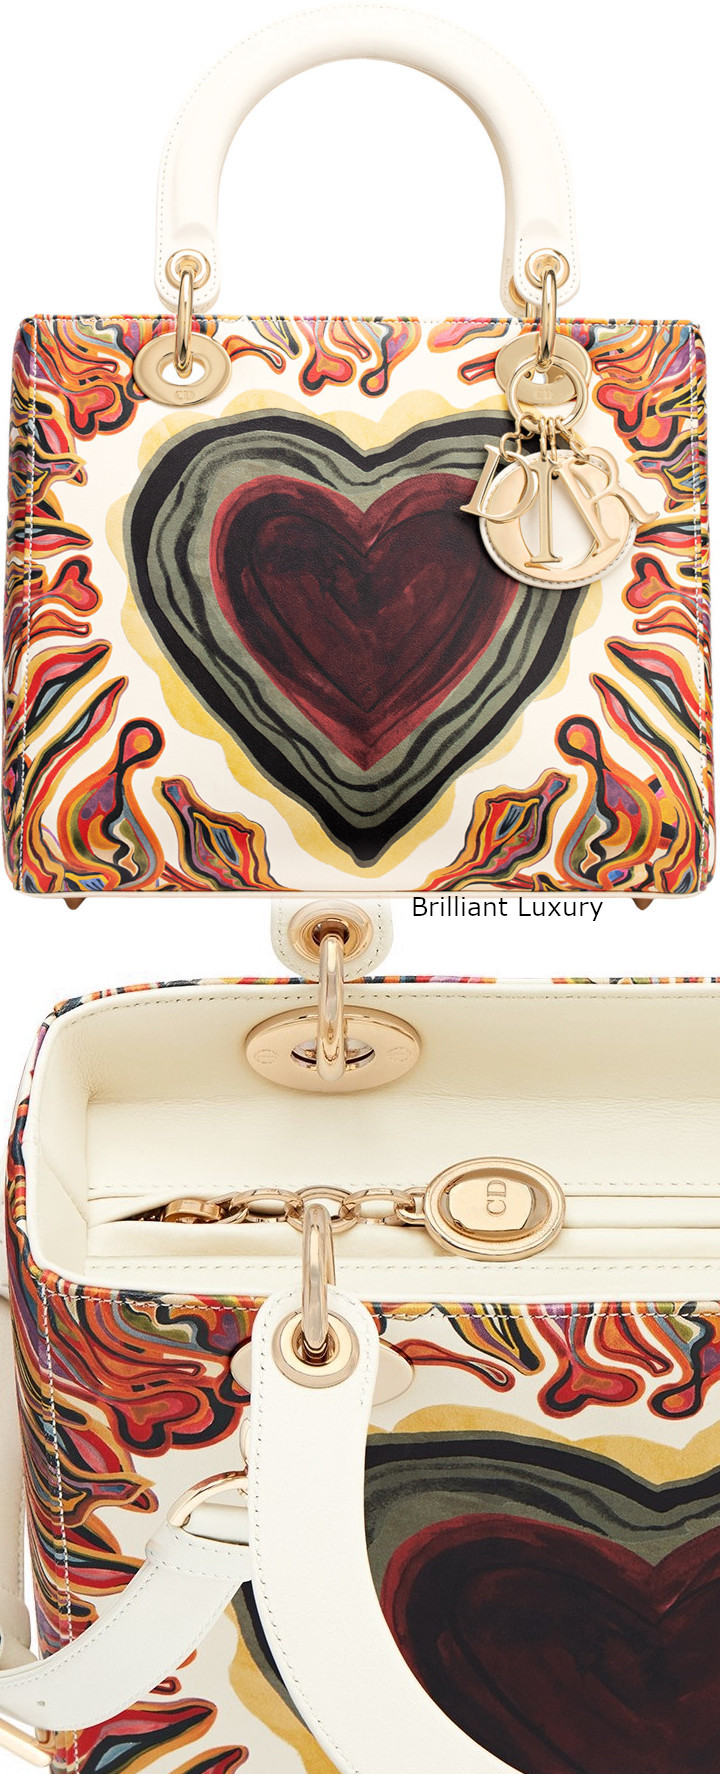 Brilliant Luxury│Lady DIOR Art Bag in off-white calfskin printed with a textured Dioramour heart and light gold-tone metal jewellery